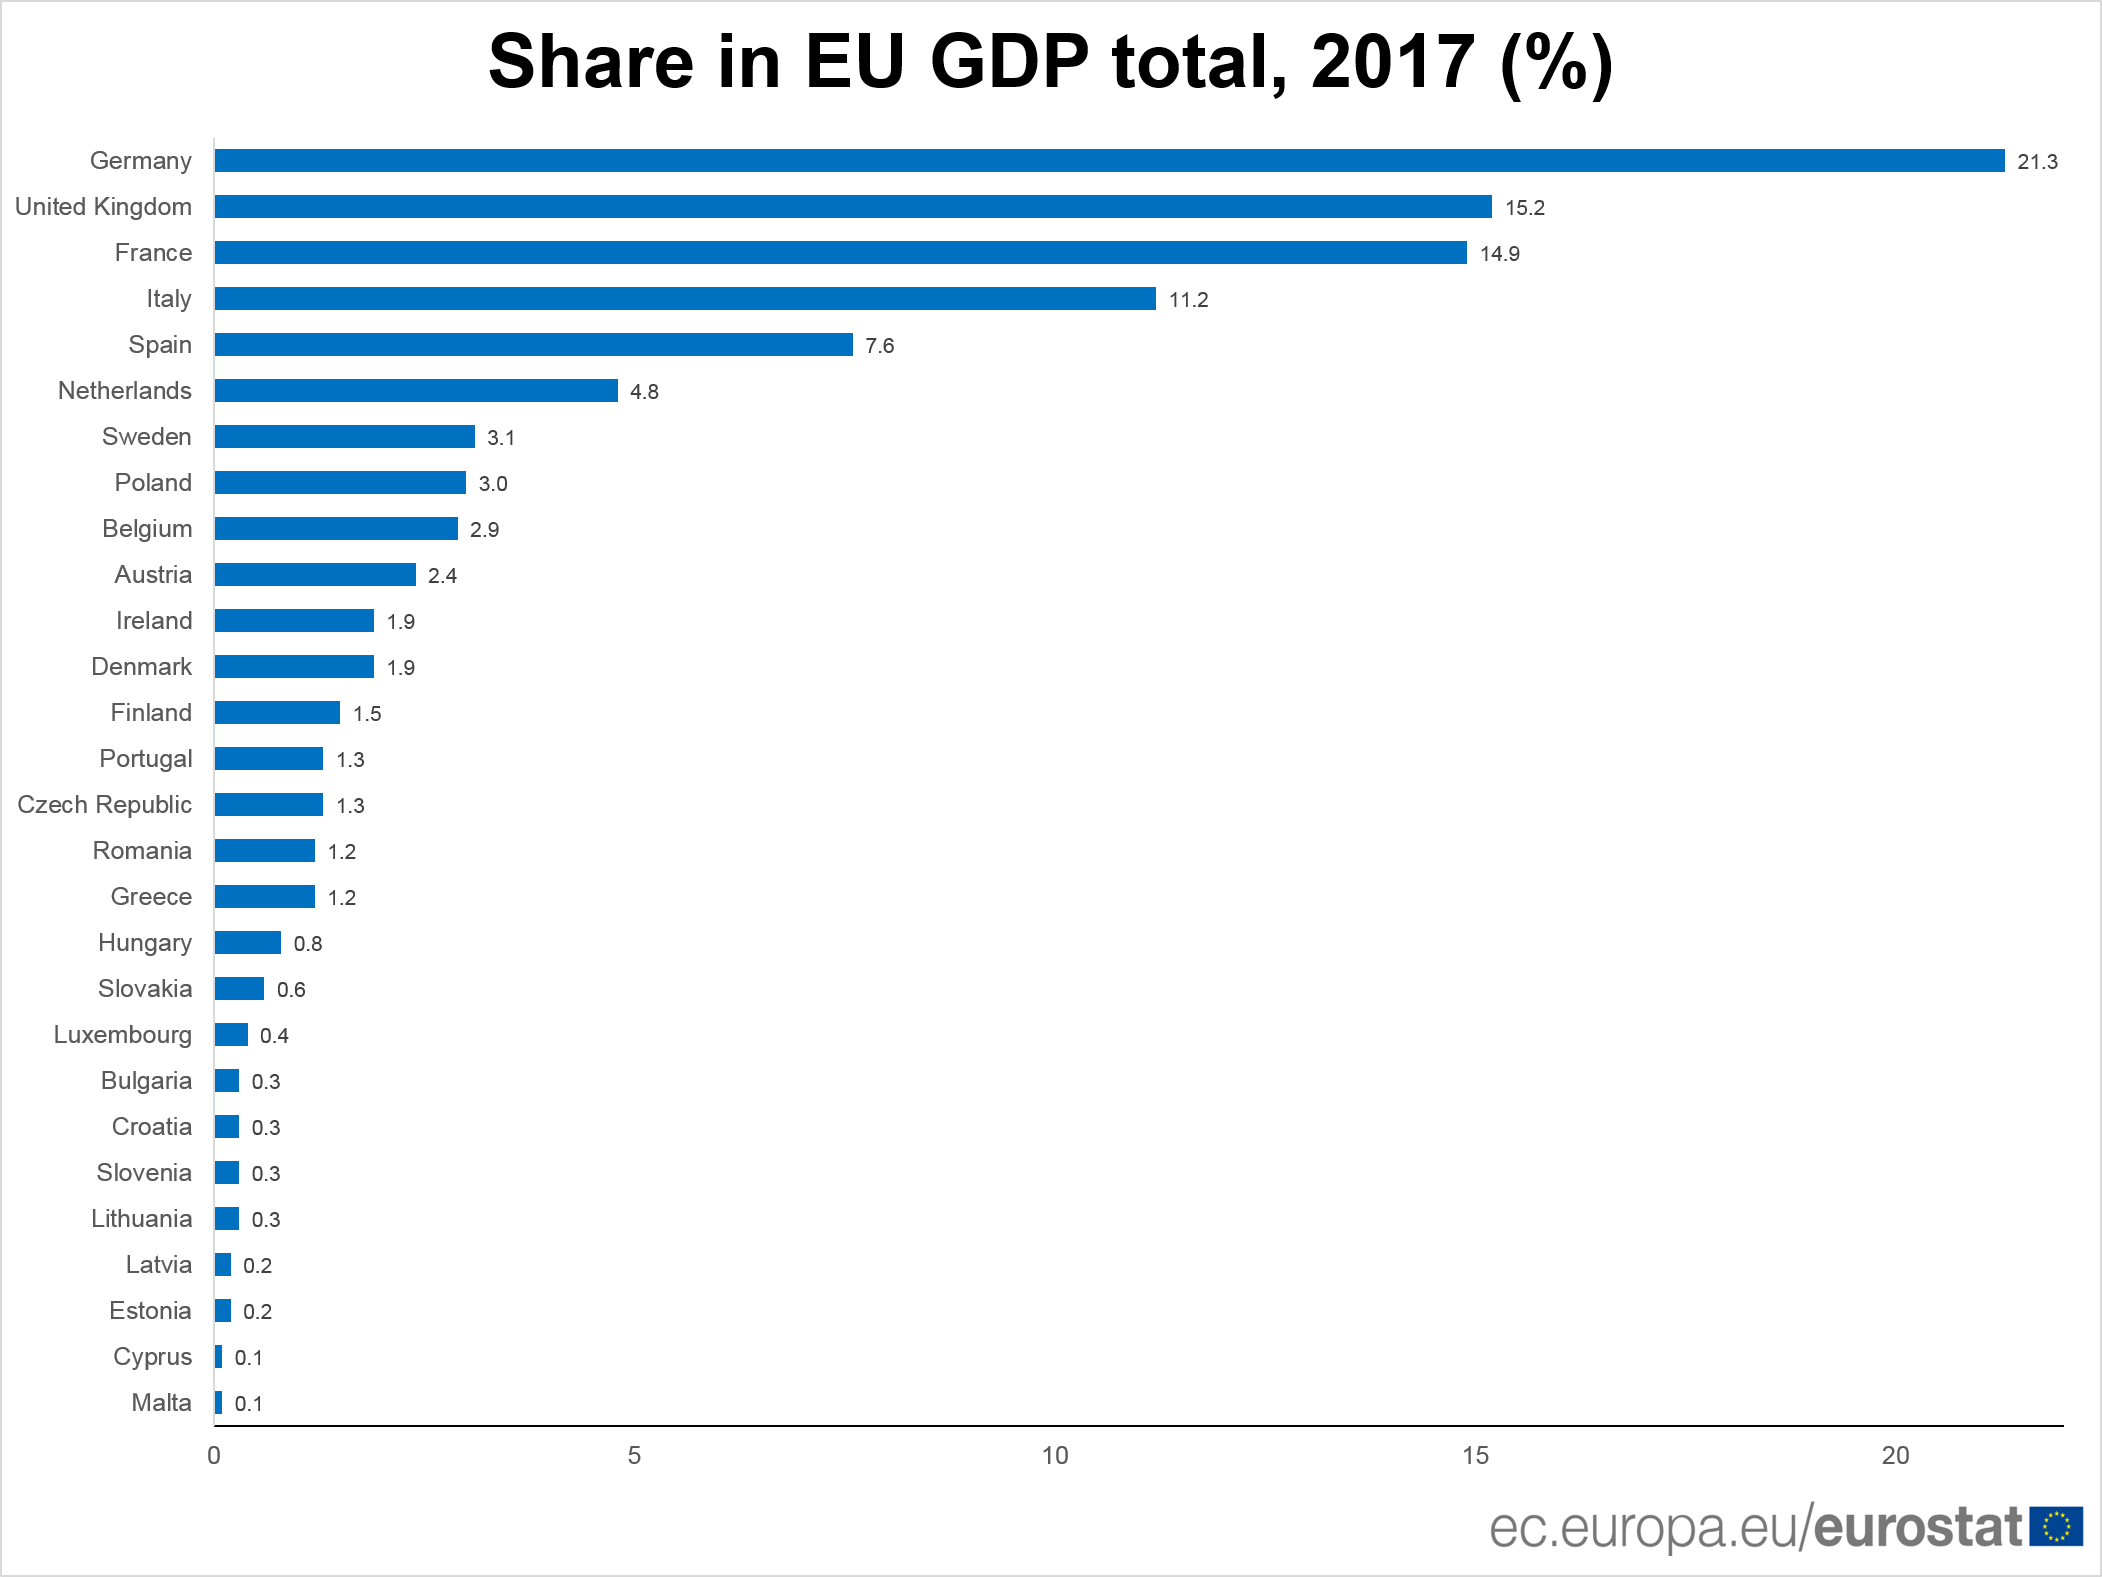 Share in EU GDP total, 2017